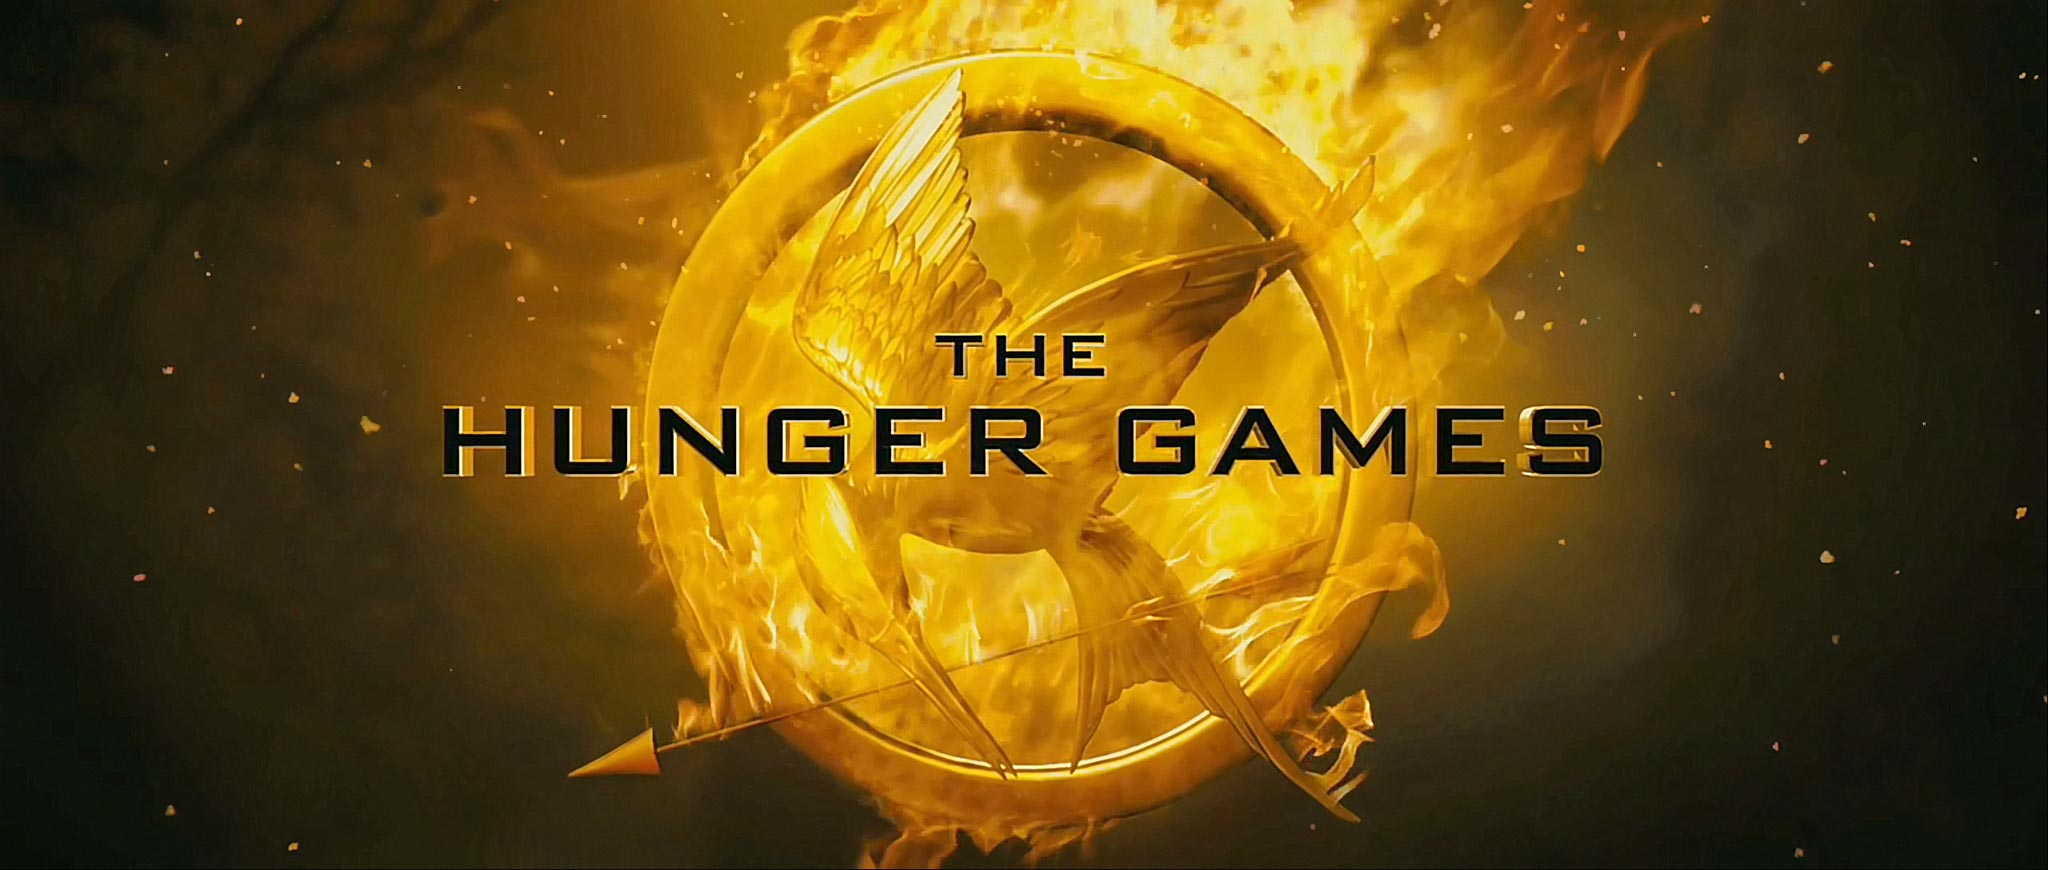 The Hunger Games A Review Wynnesworld